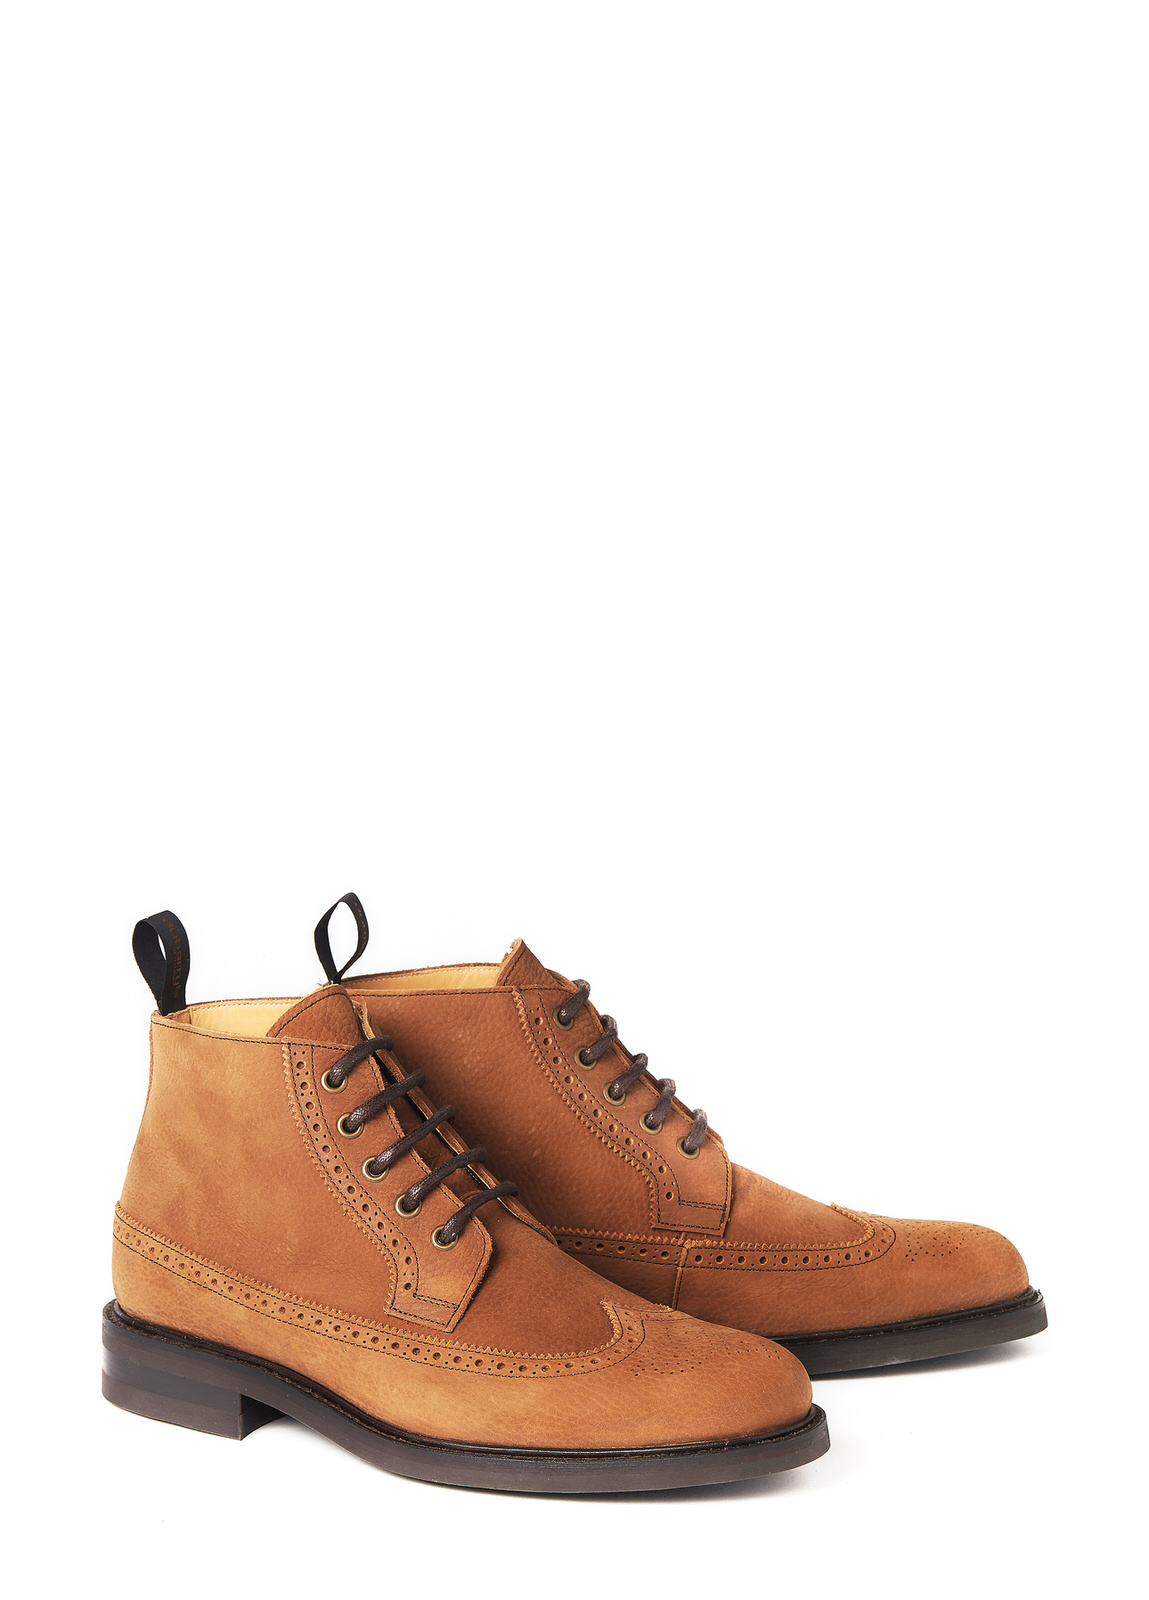 Down Goodyear Brogue Boot - Brown